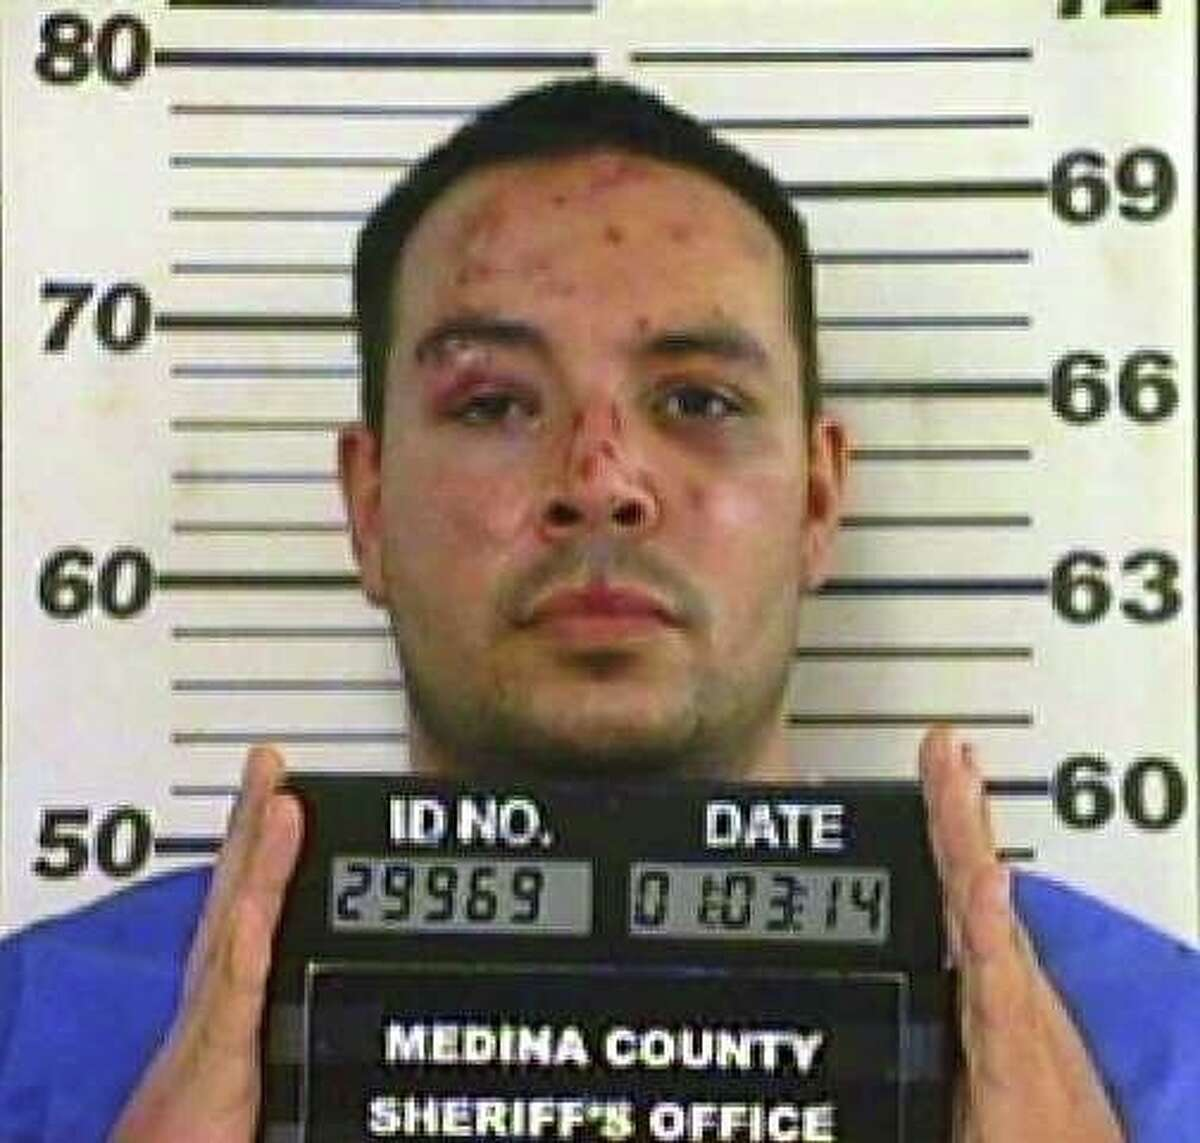 Border patrol agent Adam Scott Garibay is seen in a Jan. 3, 2014 booking mug provided by the Medina County Sheriff's department. Garibay pleaded guilty Nov. 9, 2015 to killing Keith Martin just outside Hondo.